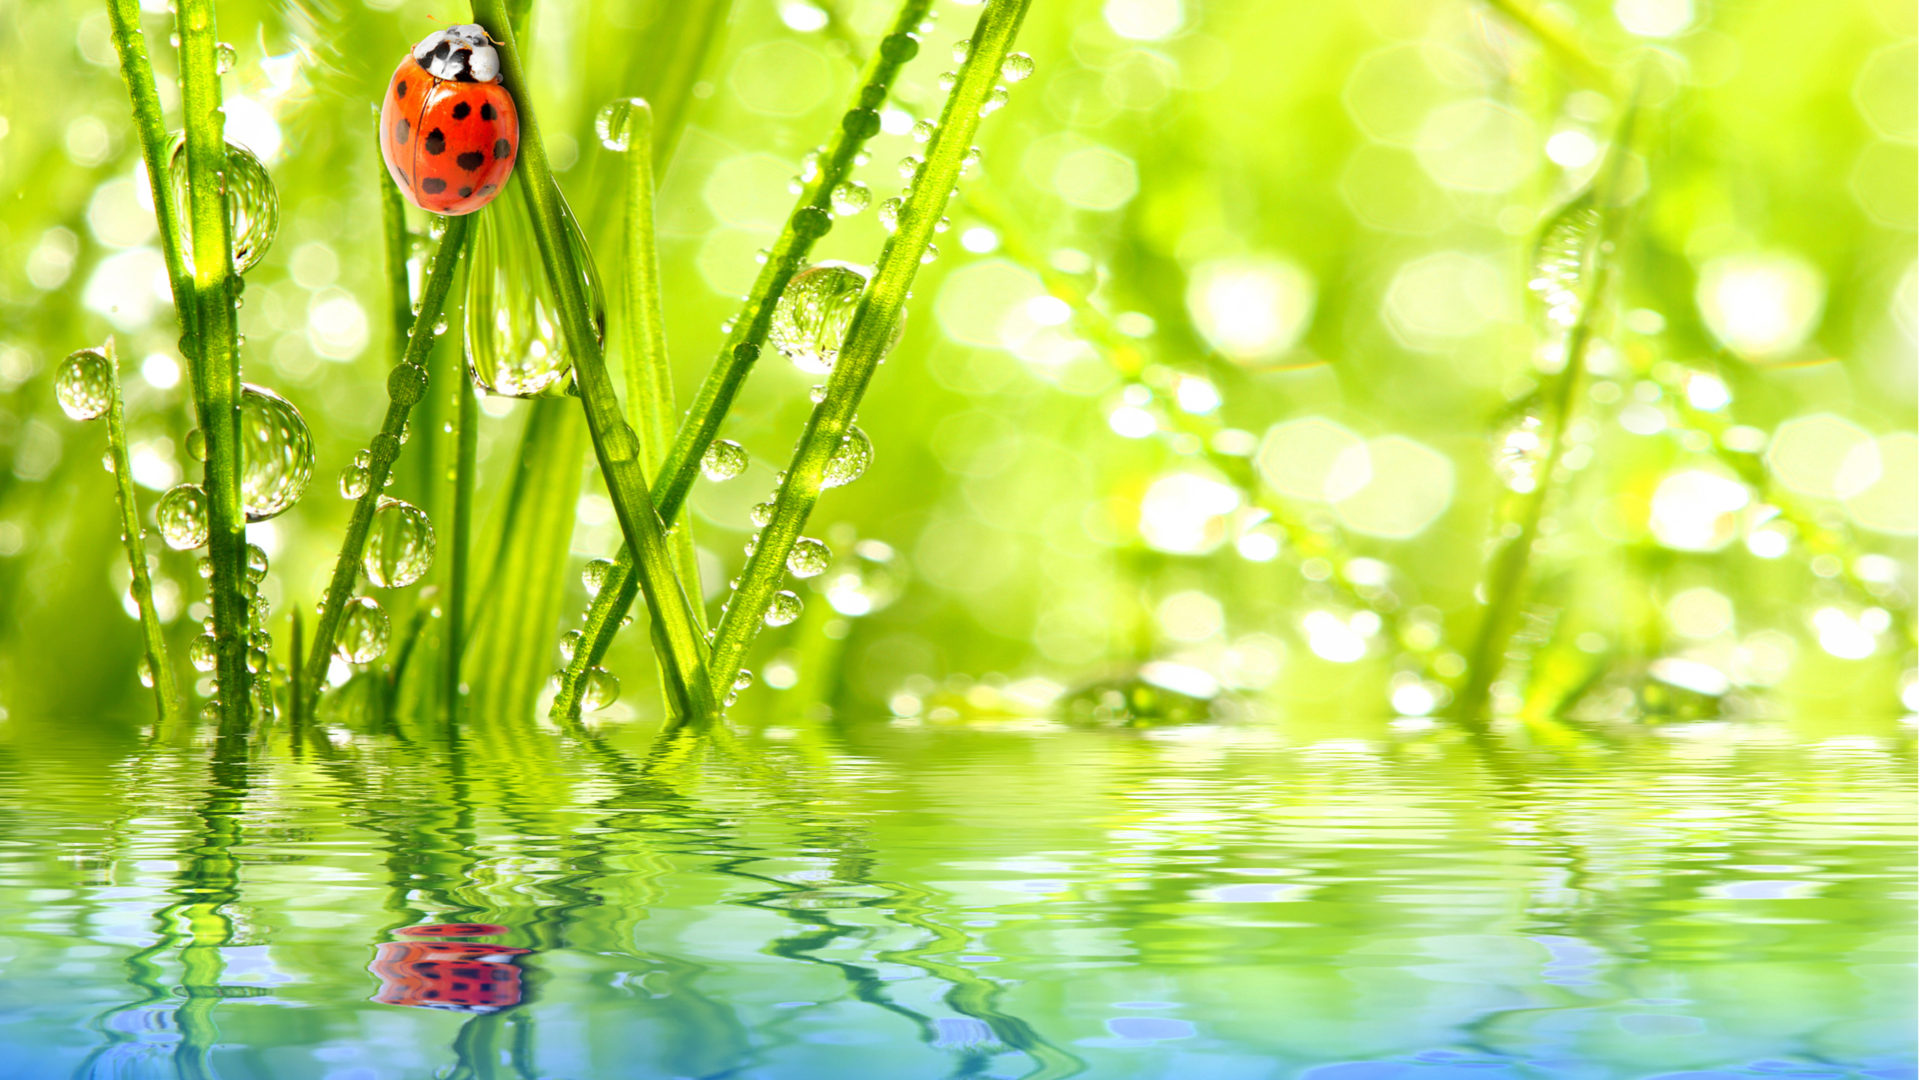 Happy New Year 2016 3d Wallpaper For Pc Insect Ladybug Water Drops Dew Green Grass Reflection Sky